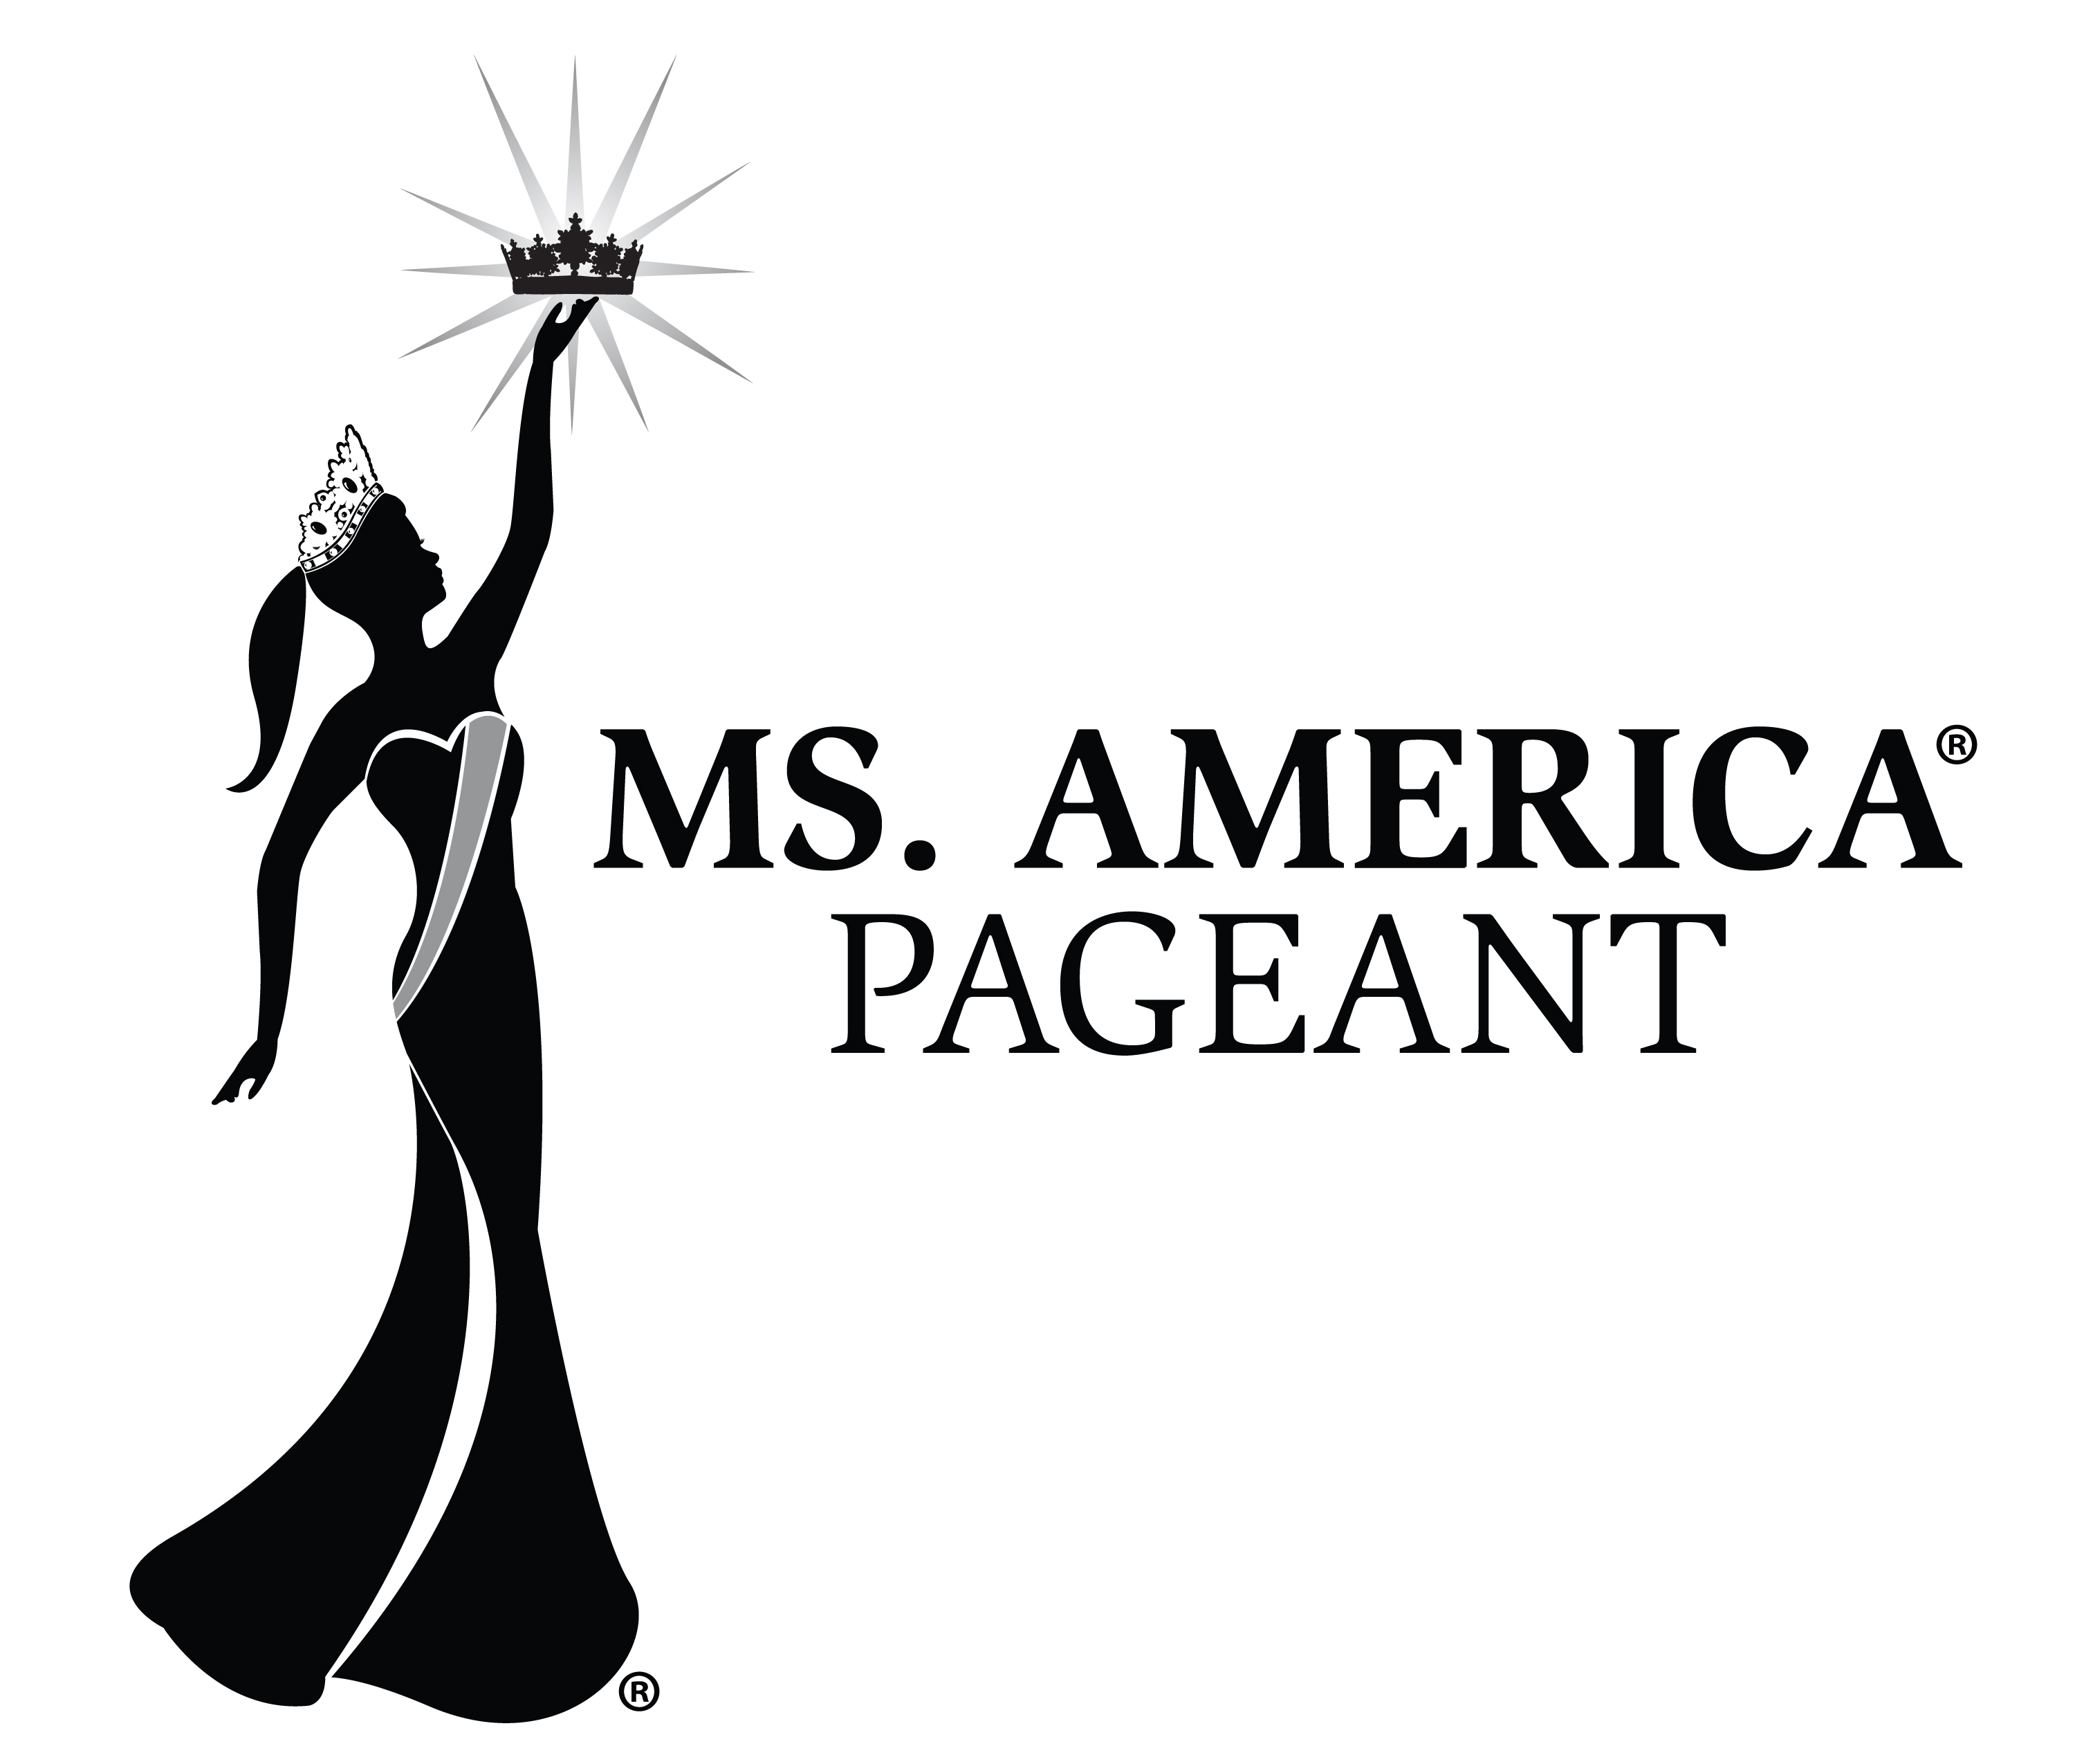 beauty contests harmful what are the benefits of a beauty pageant  ms america pageant the official logo of the ms america pageant no one is permitted to